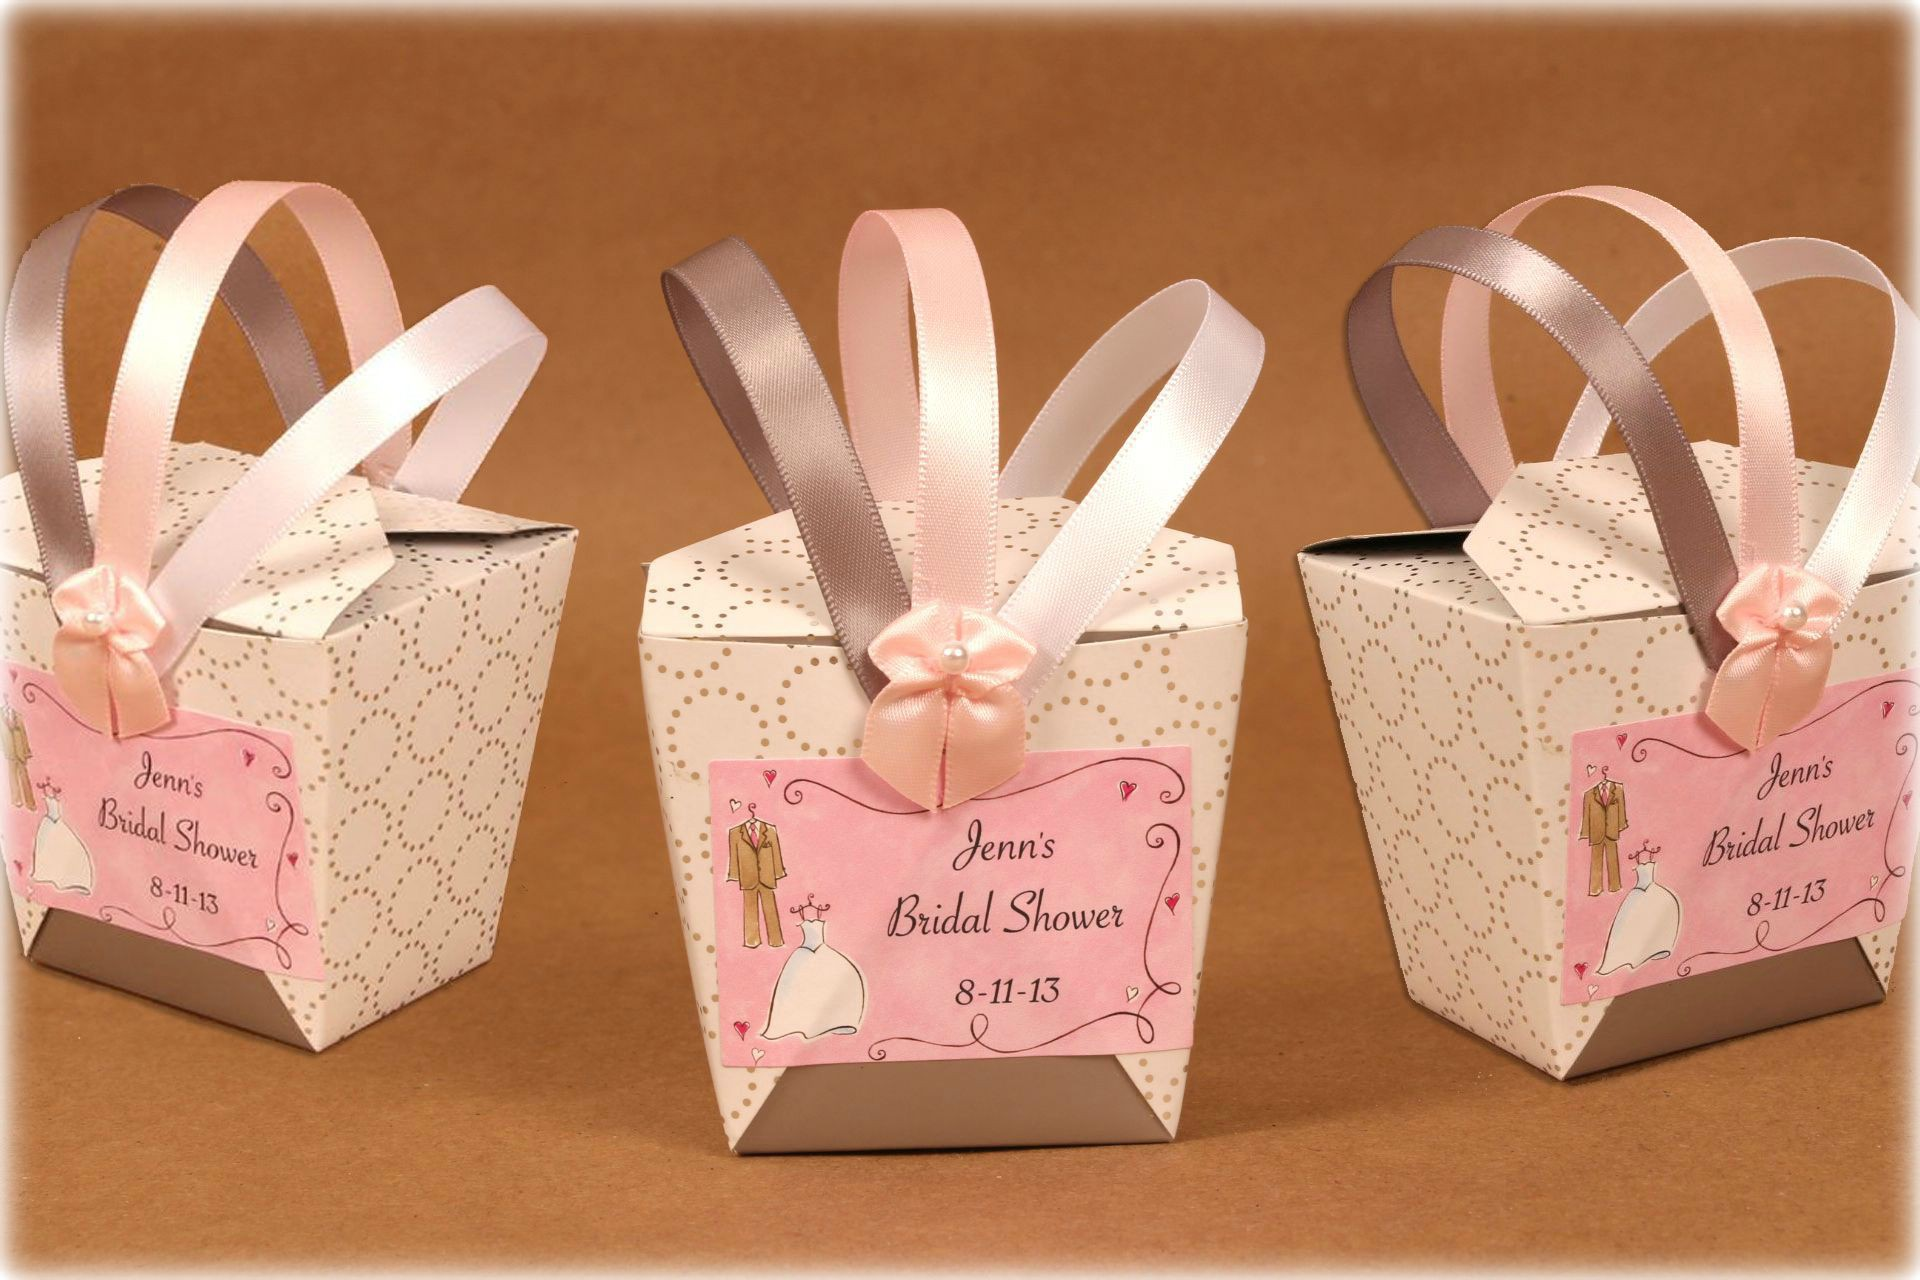 Bridal Shower Favor: Chinese Takeout Style Boxes